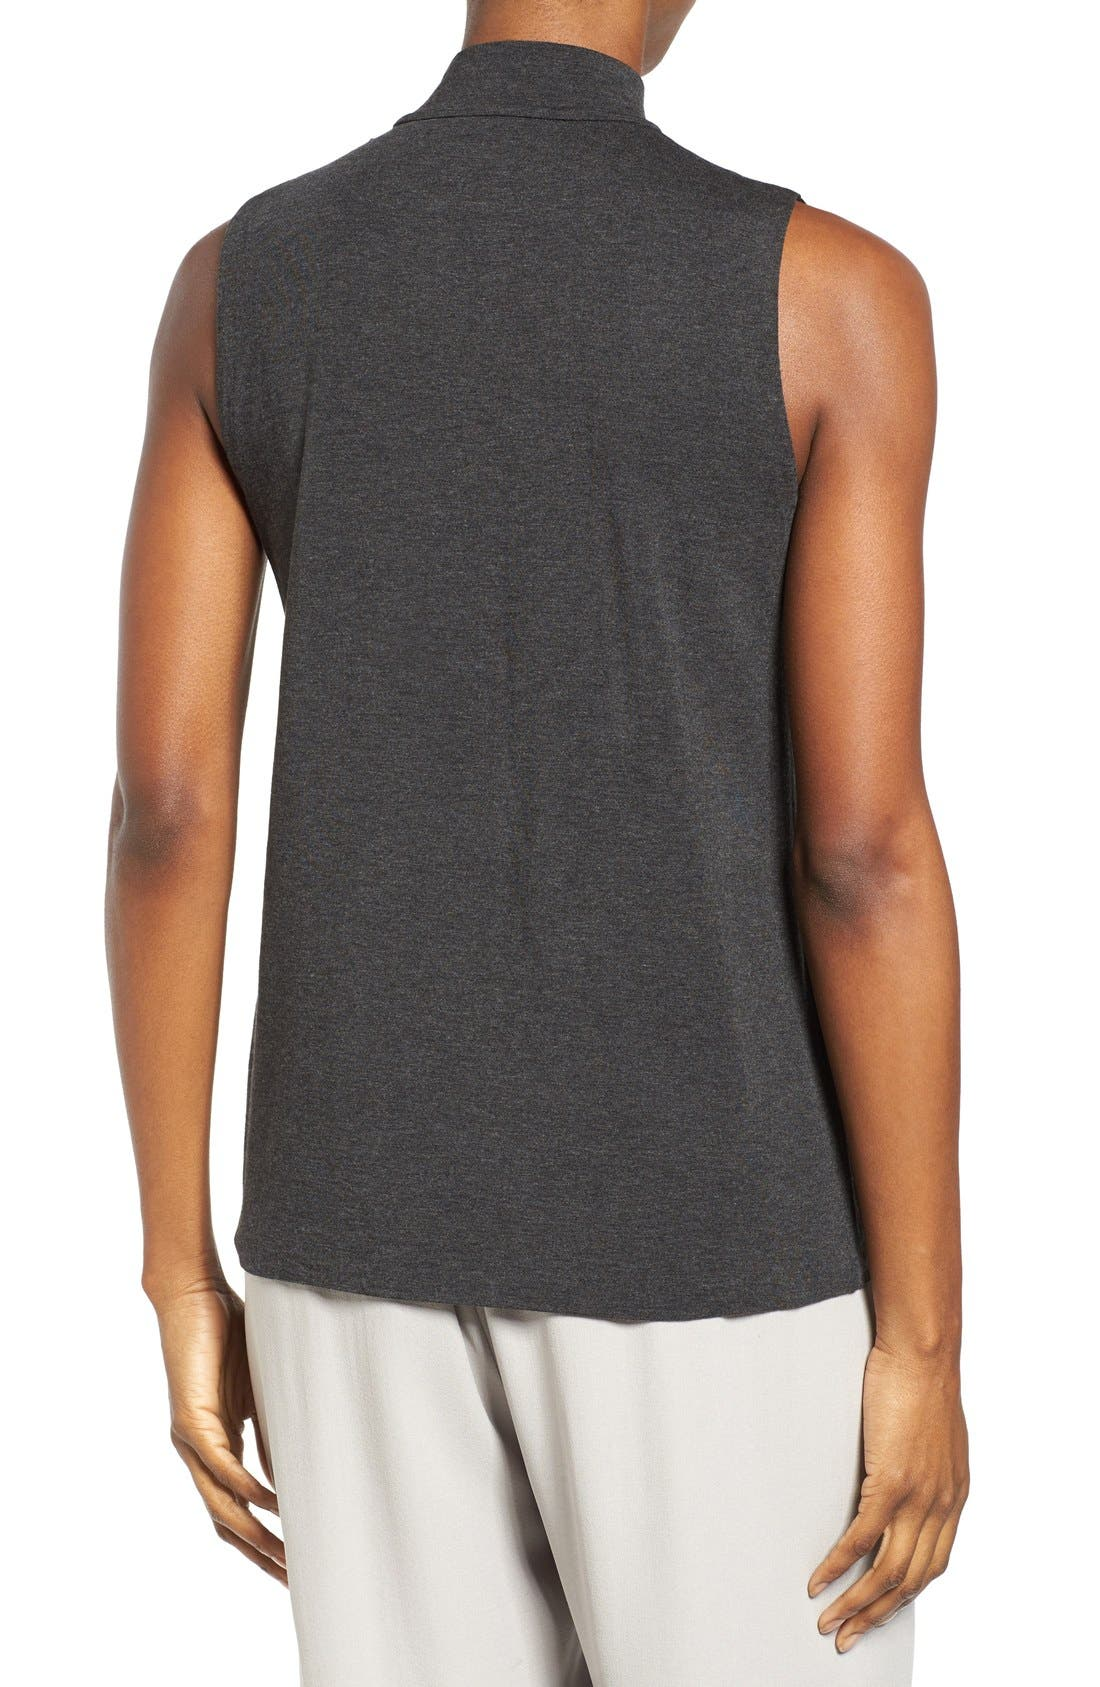 EILEEN FISHER,                             Lightweight Tencel<sup>®</sup> Lyocell Stretch Jersey Top,                             Alternate thumbnail 2, color,                             001